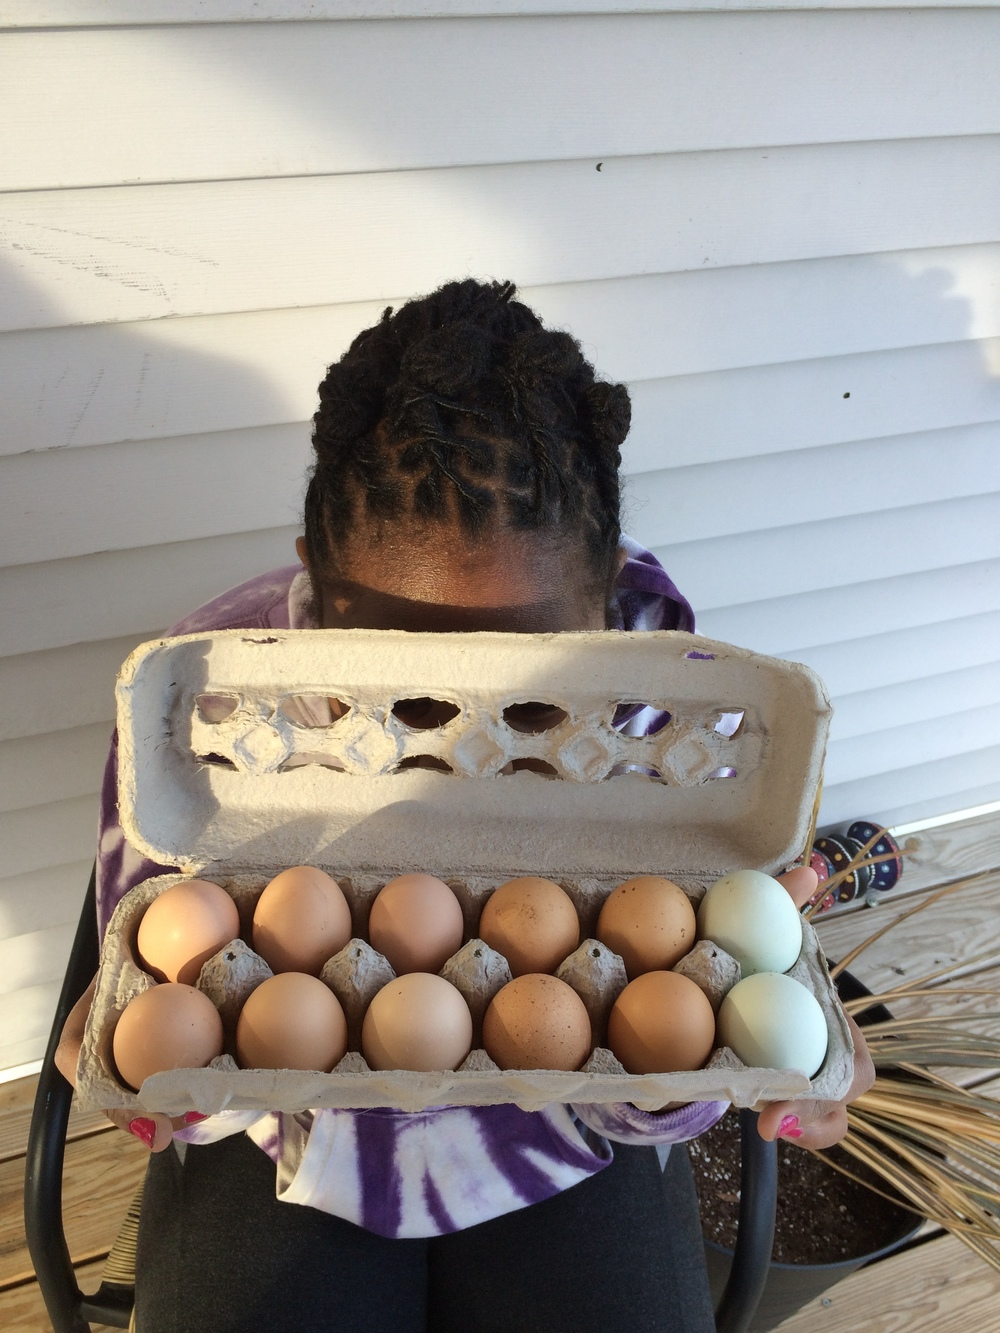 Amira enjoying the fruits of her labor in the chicken coop. Curiosity plus activity equals knowledge.